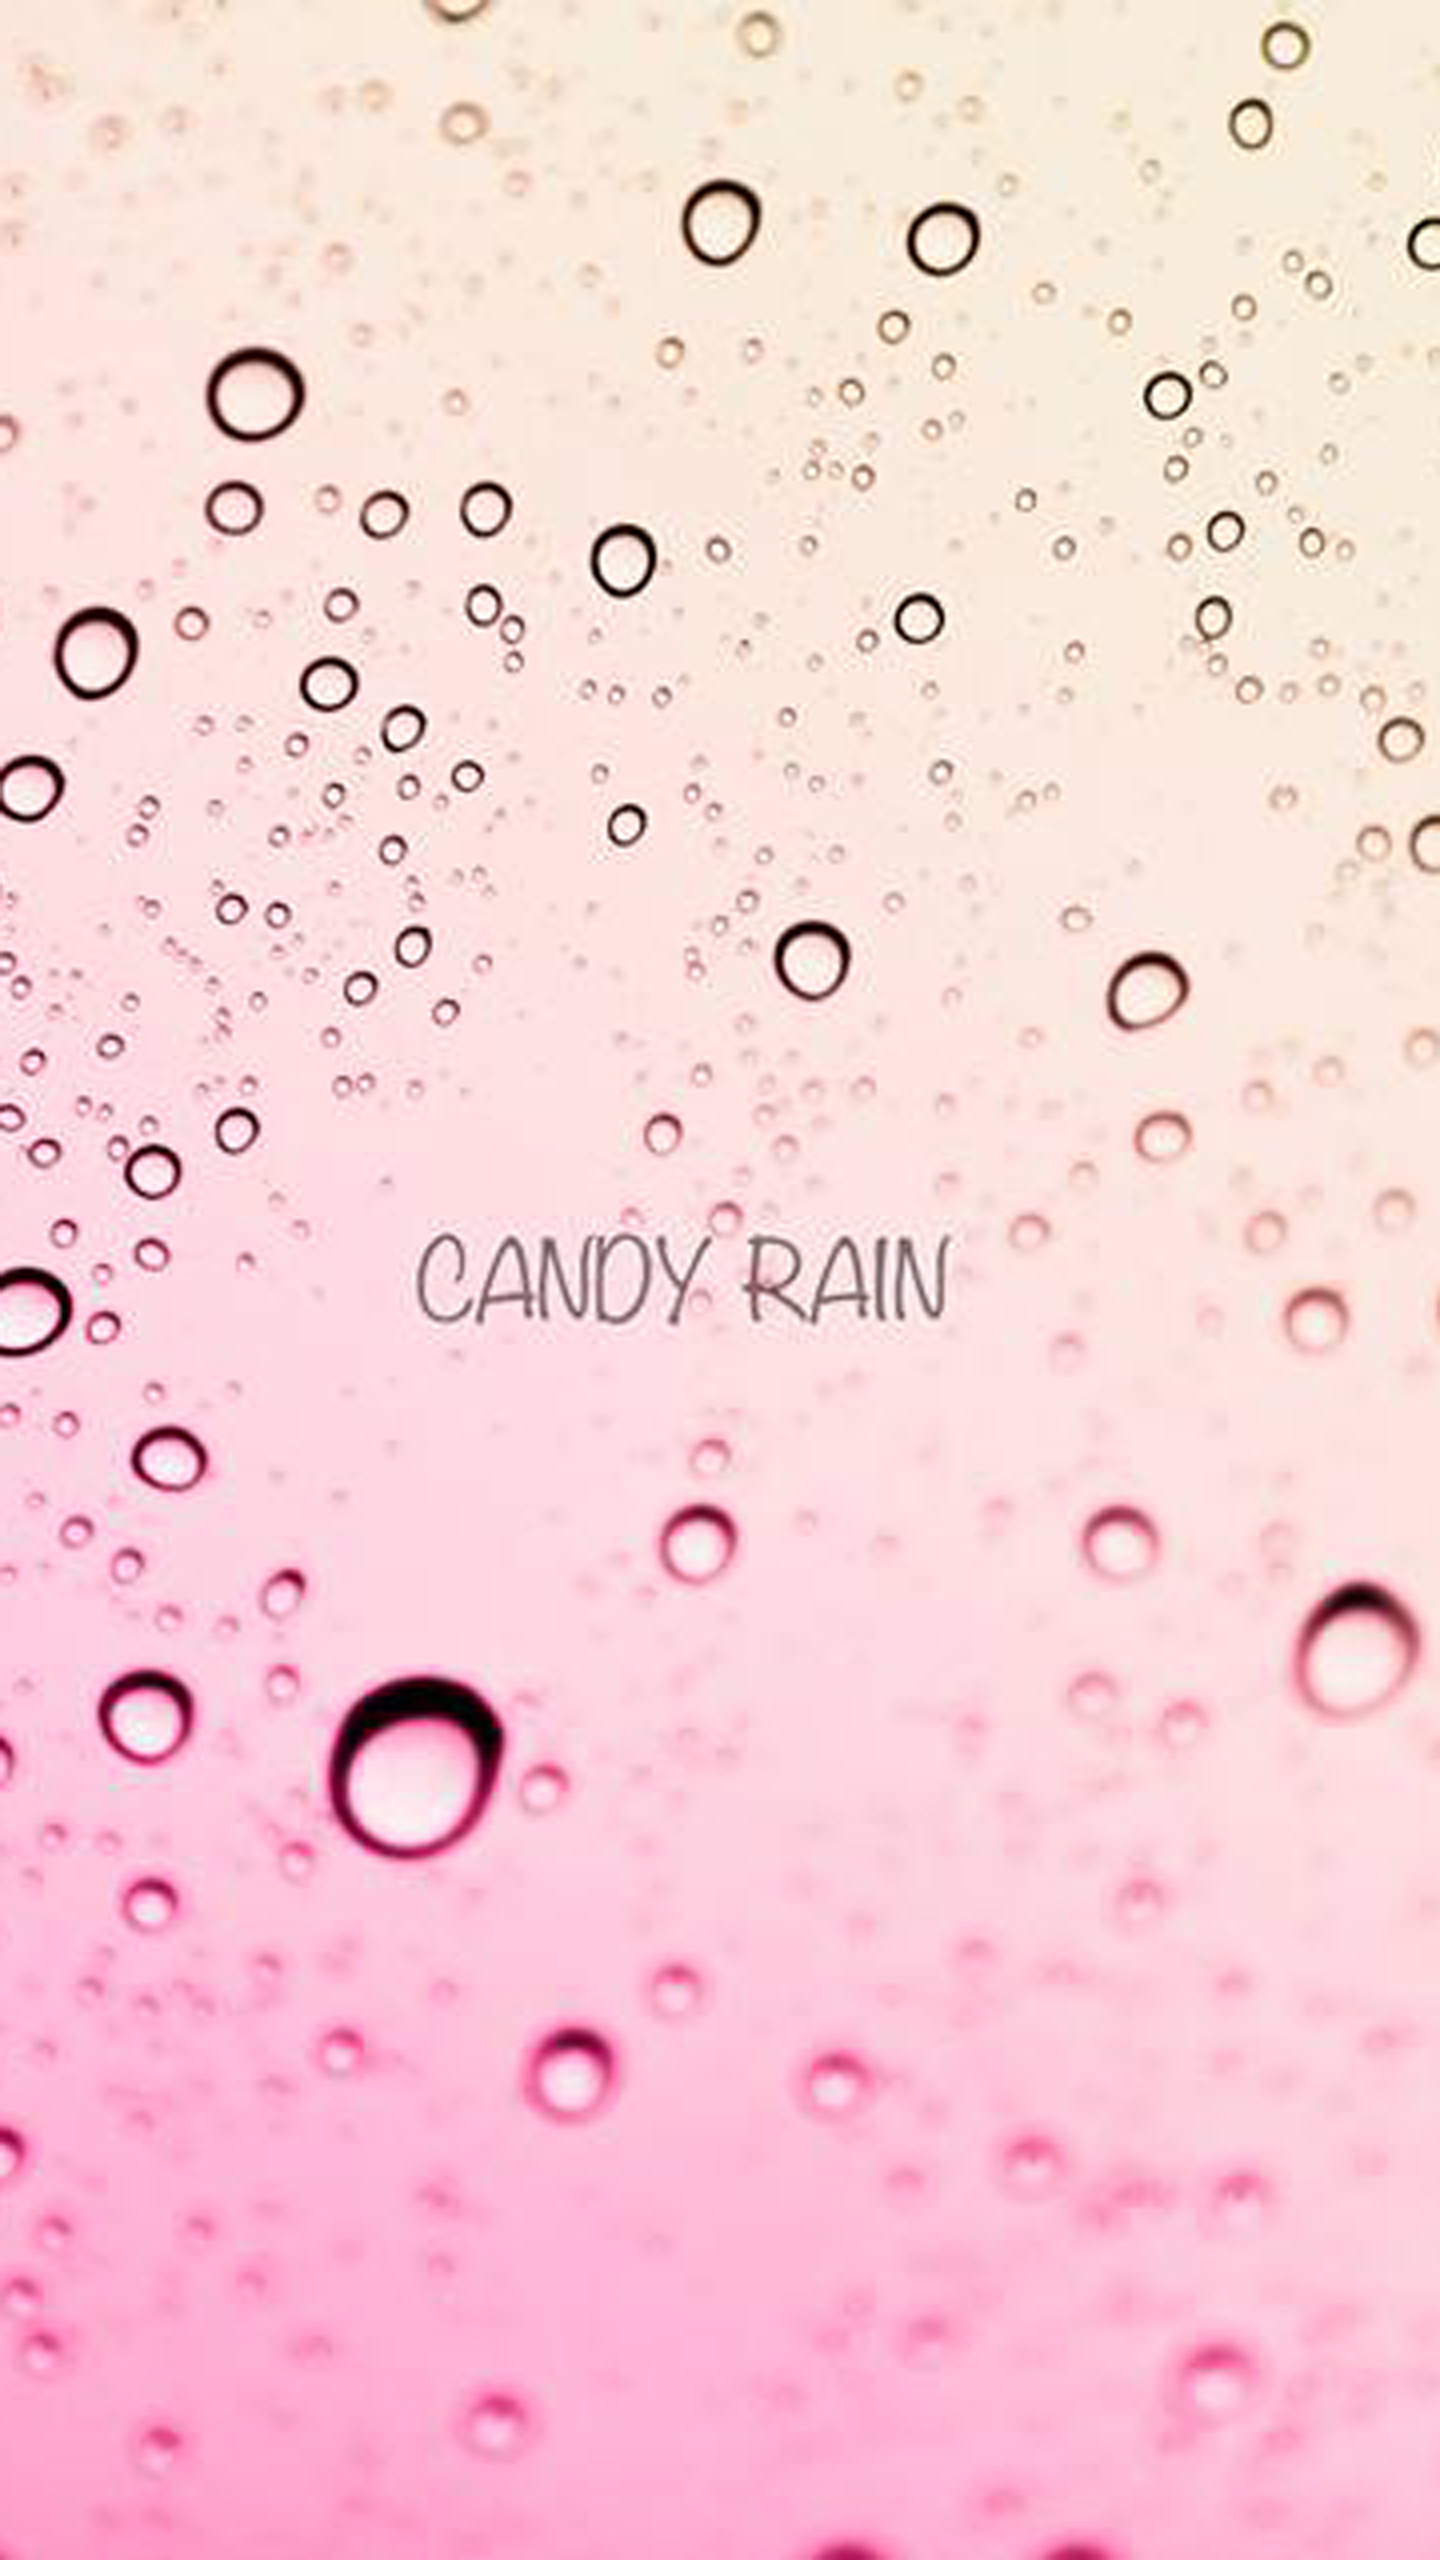 Candy Rain Wallpaper